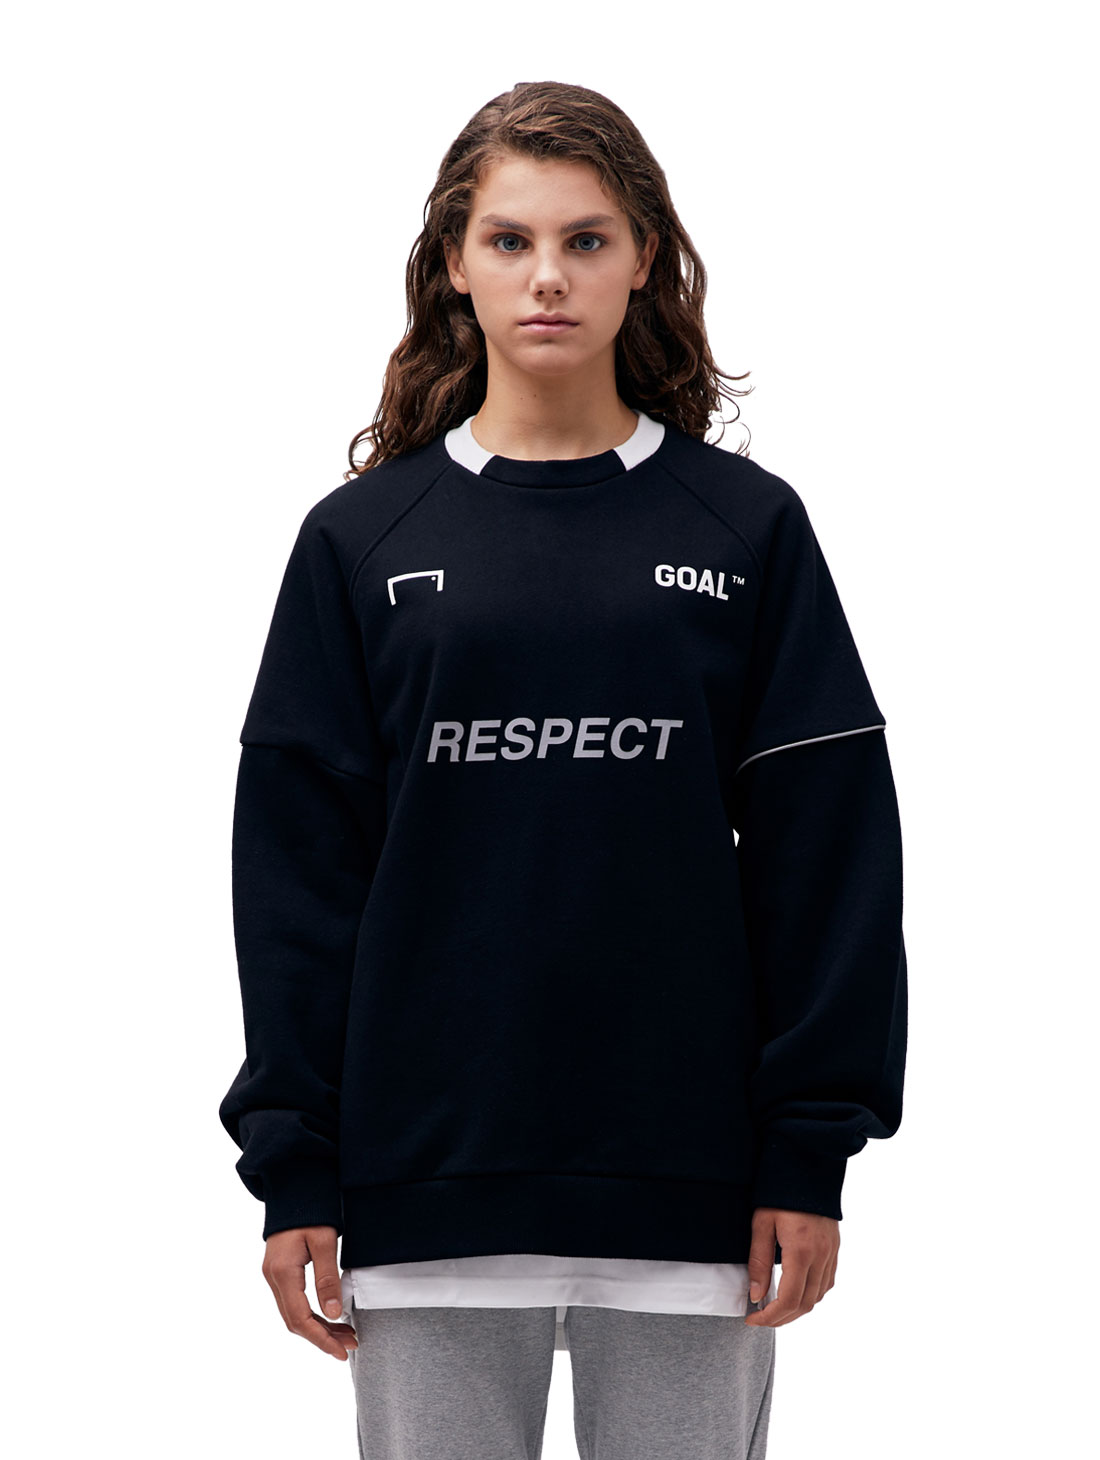 GOALSTUDIO (2XL)RESPECT SWEATSHIRT - BLACK